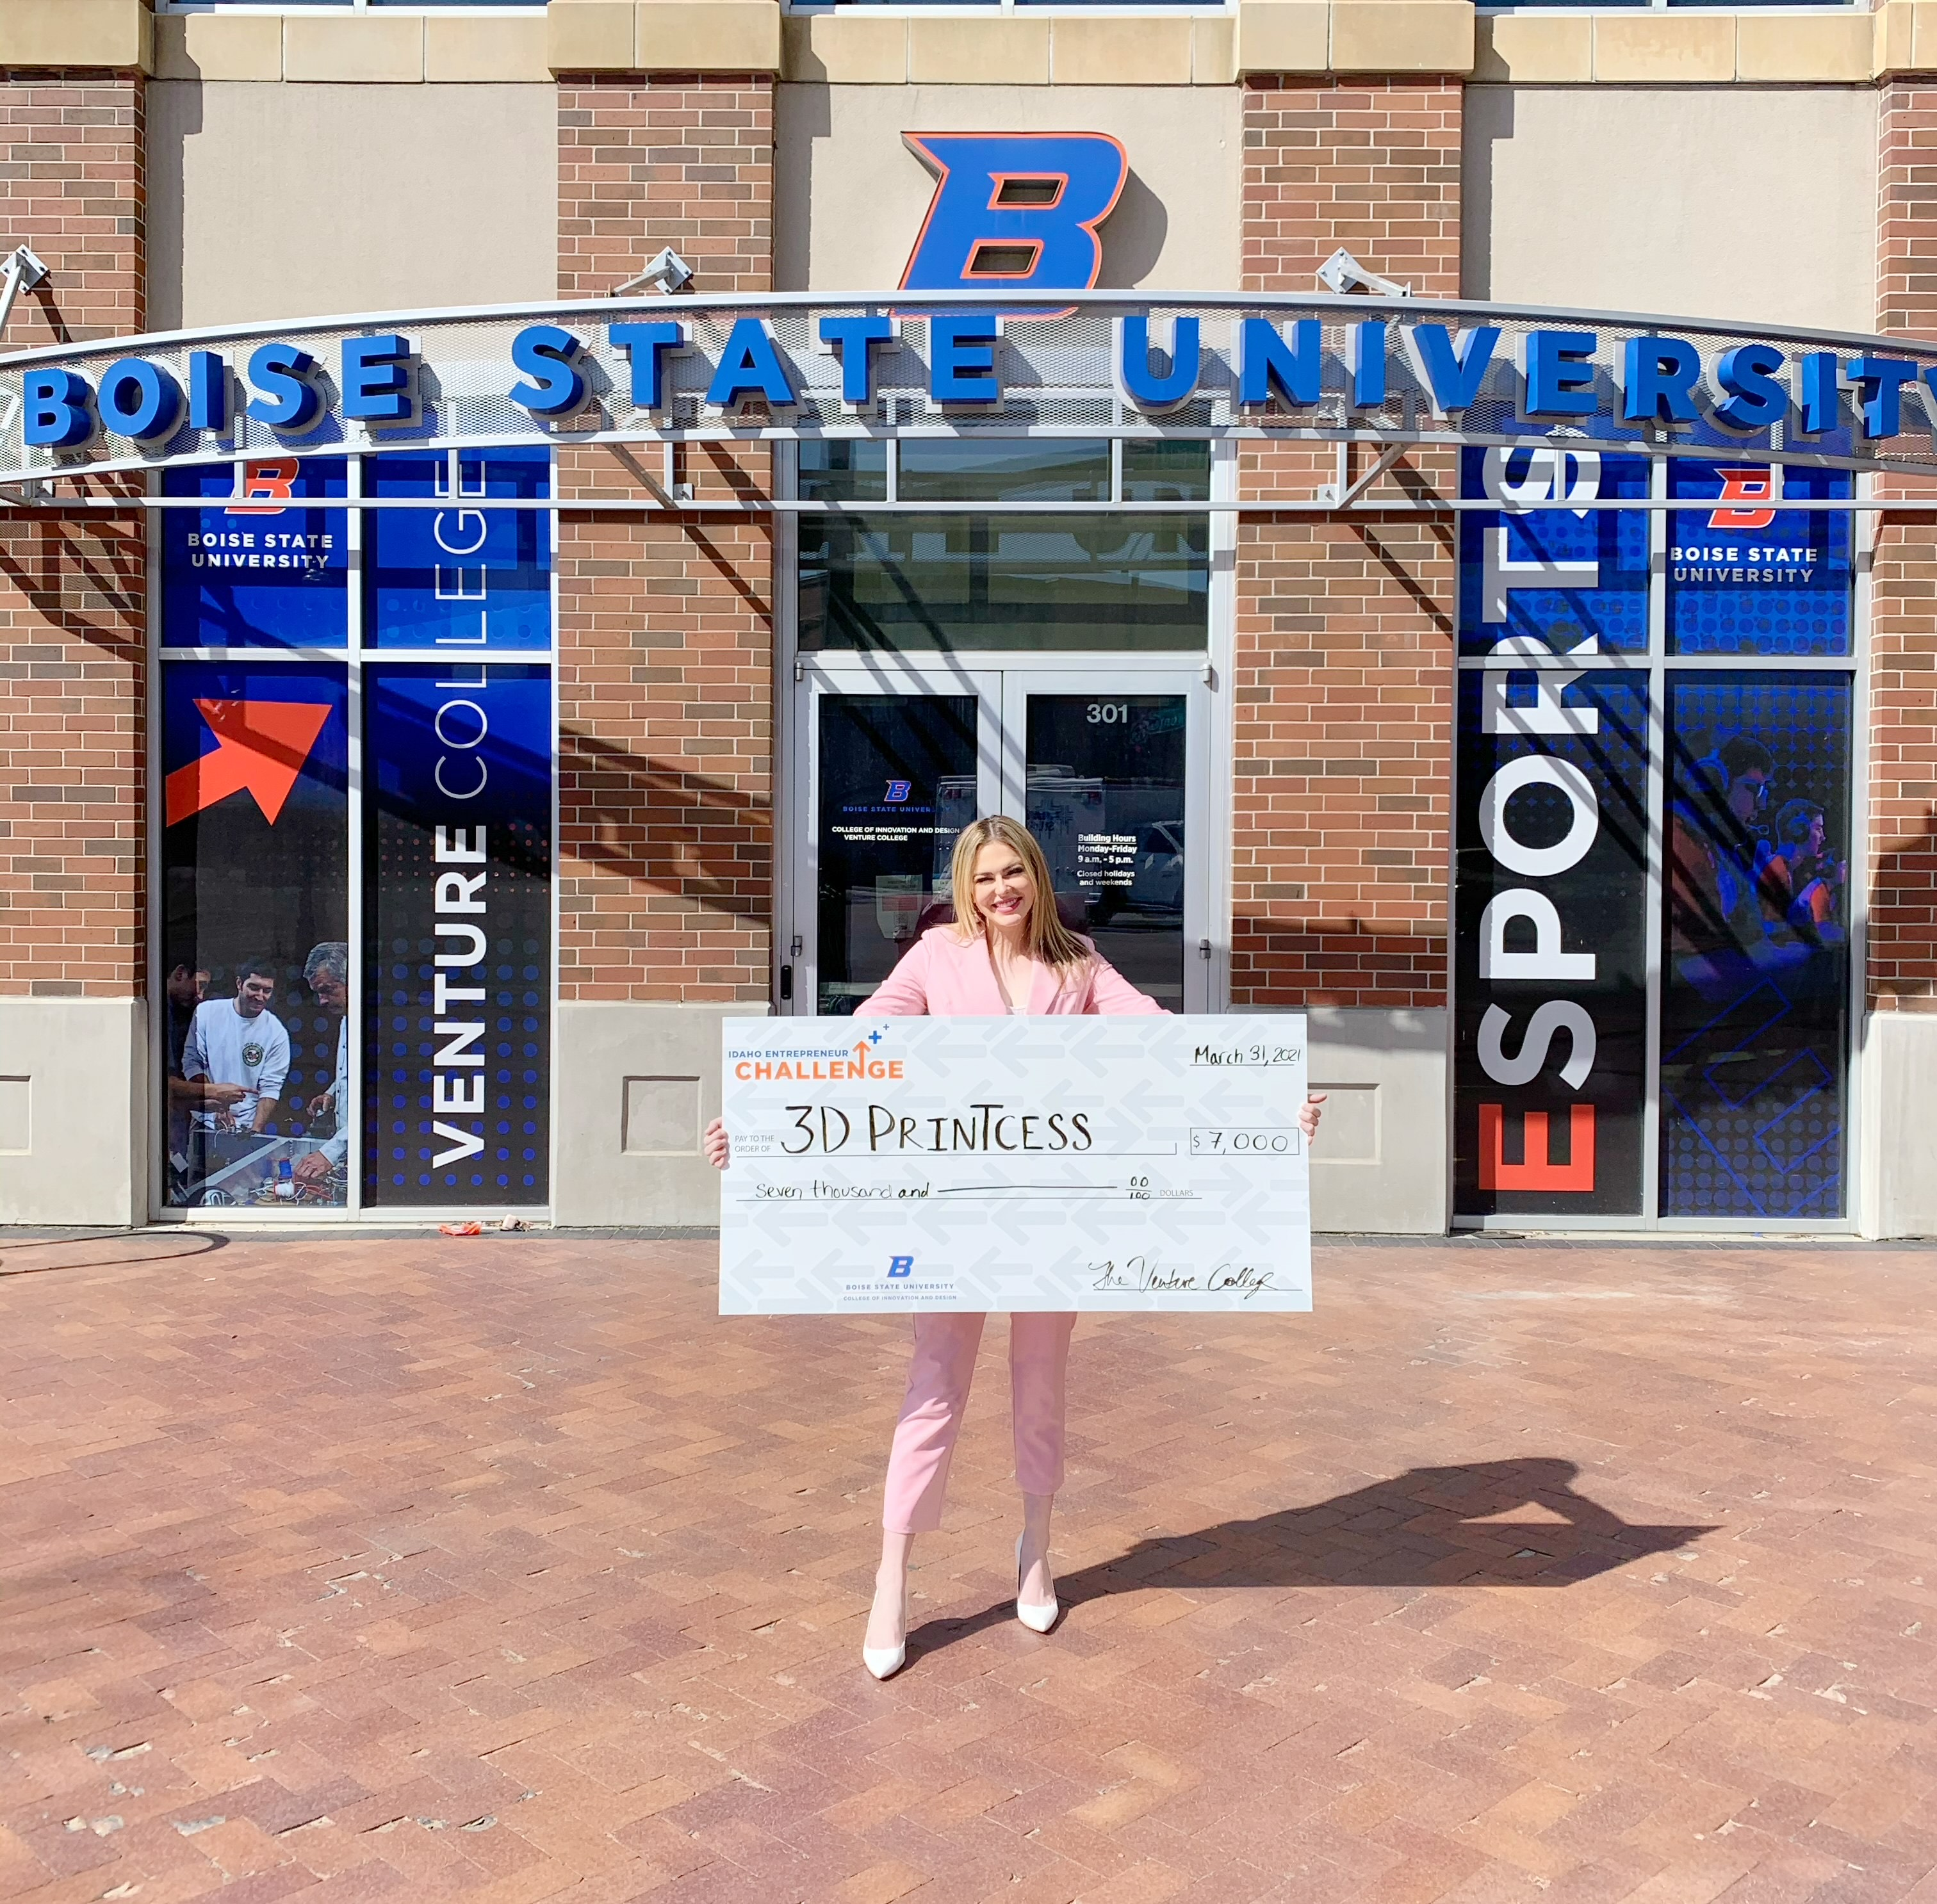 Sierra holding check for 3D Princess, $7,000